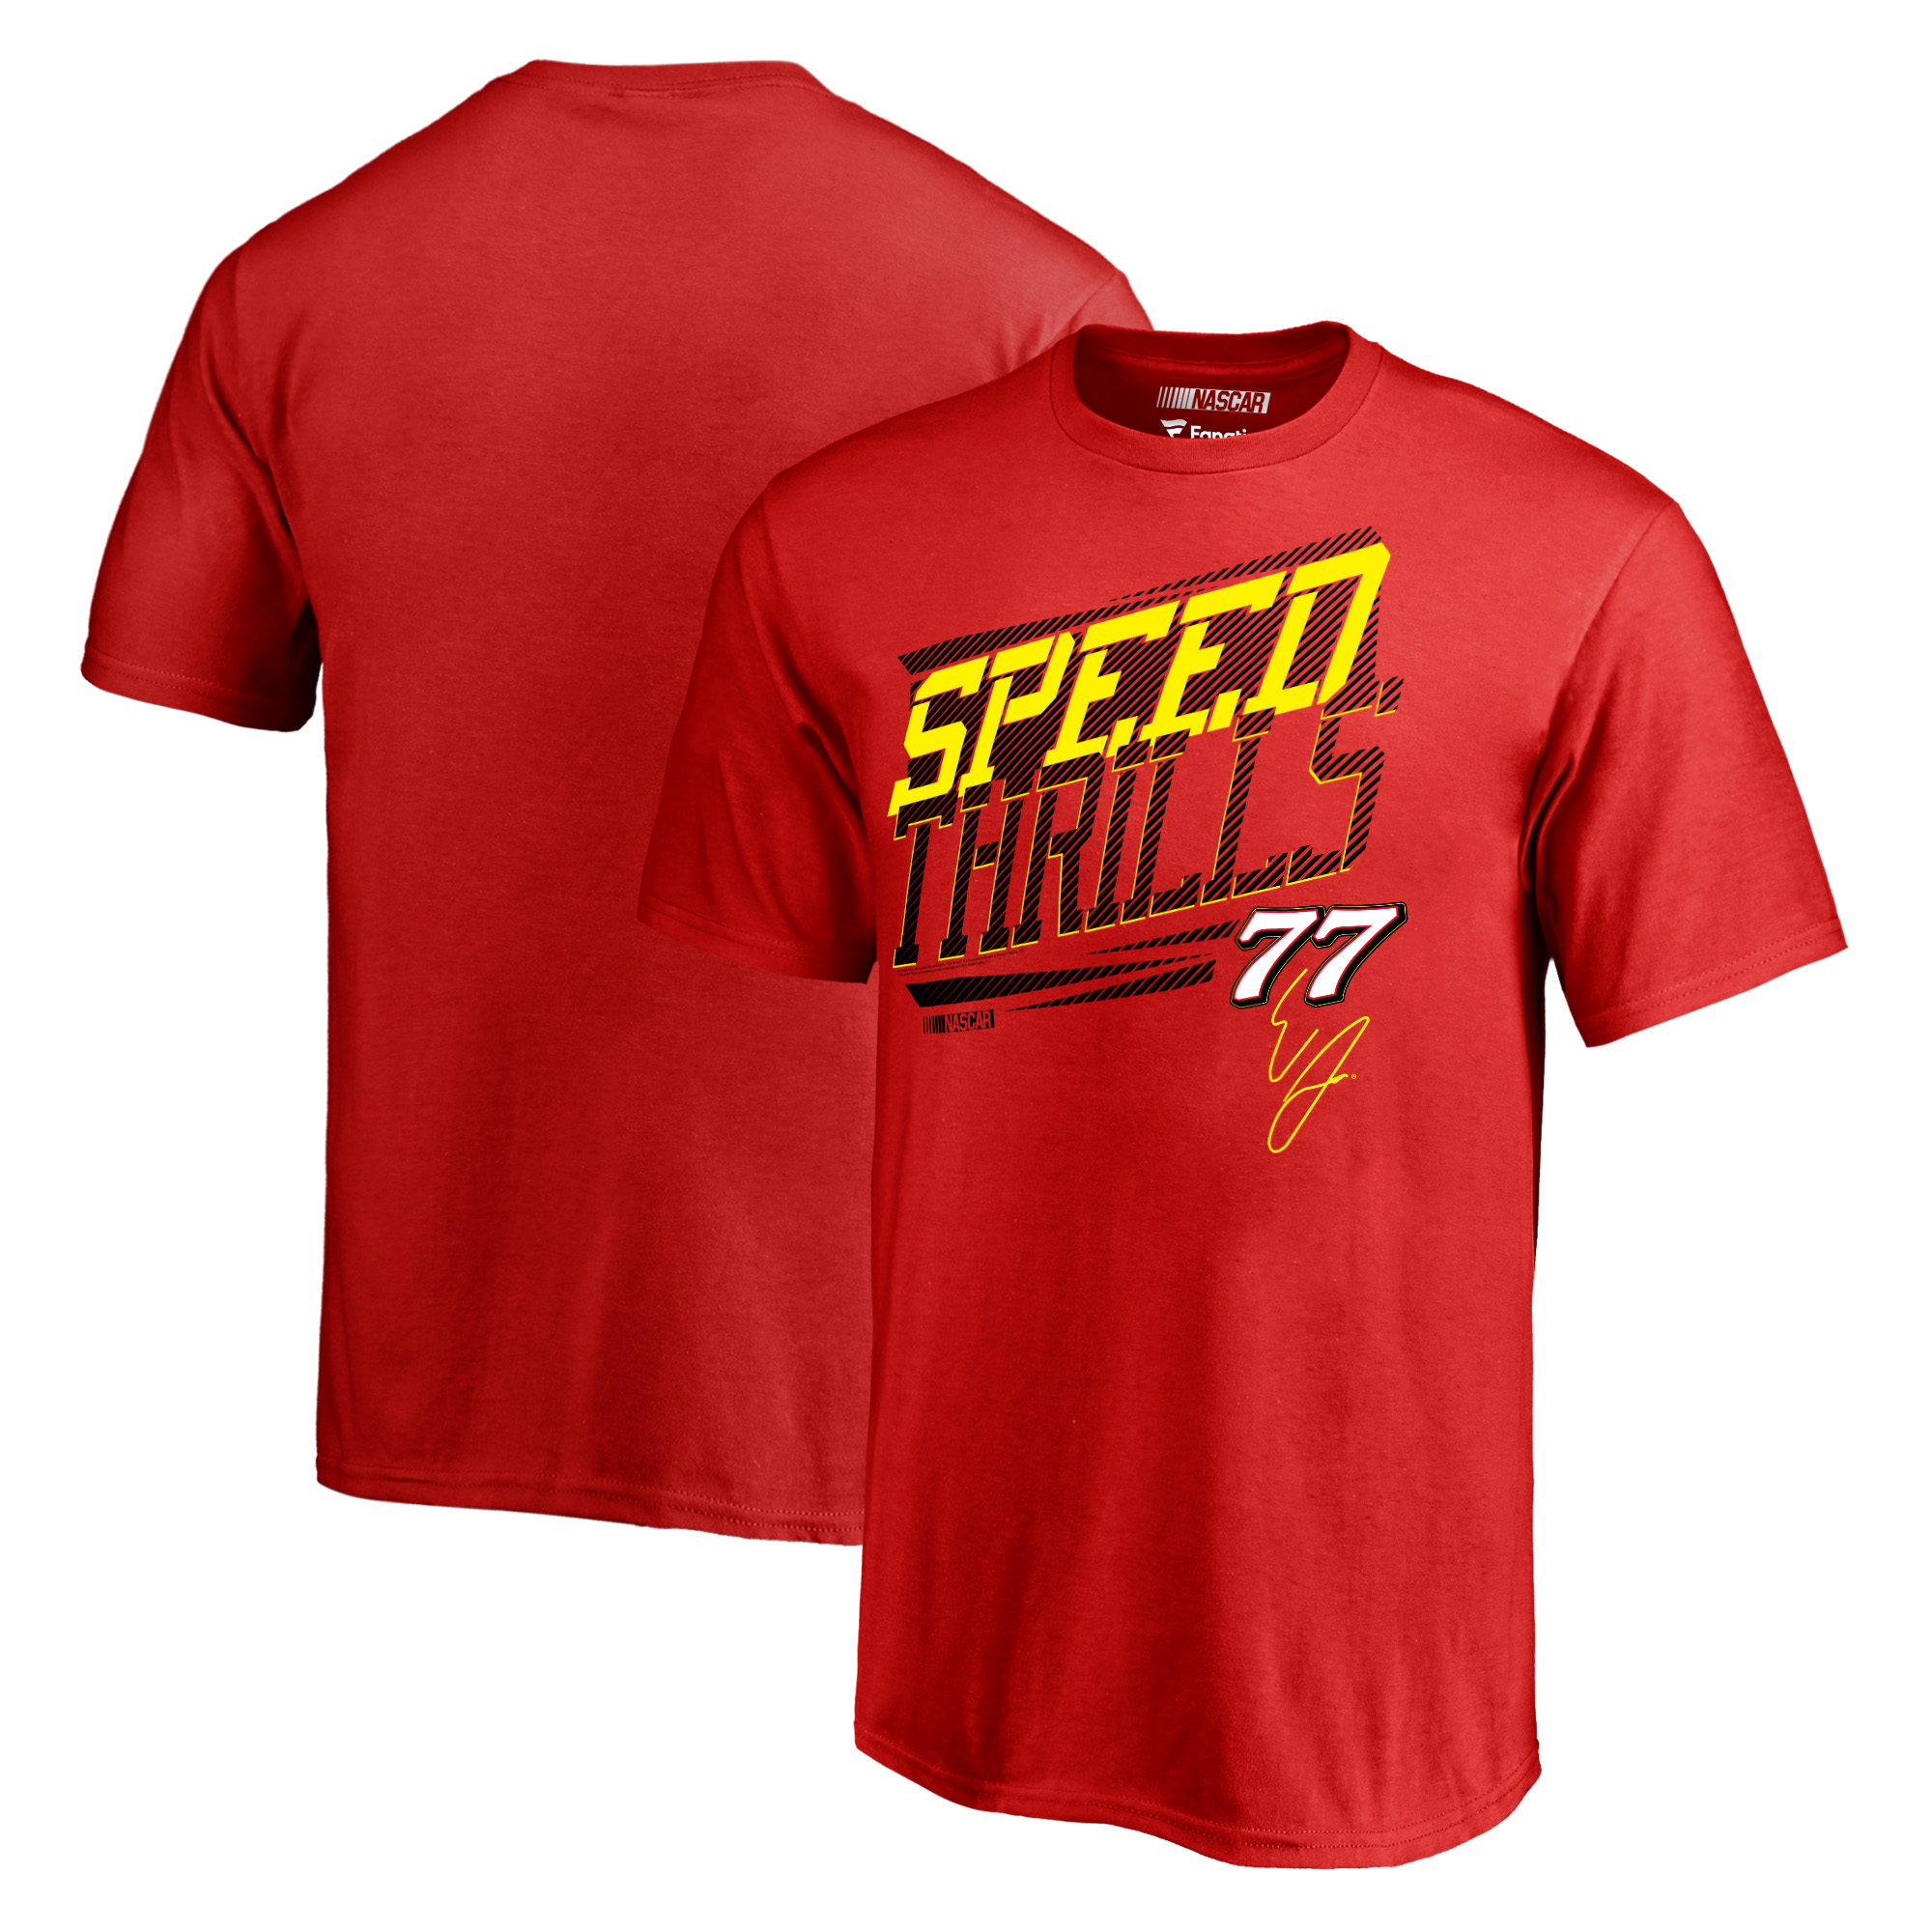 Erik Jones Fanatics Branded Youth Speed Thrills T-Shirt - Red